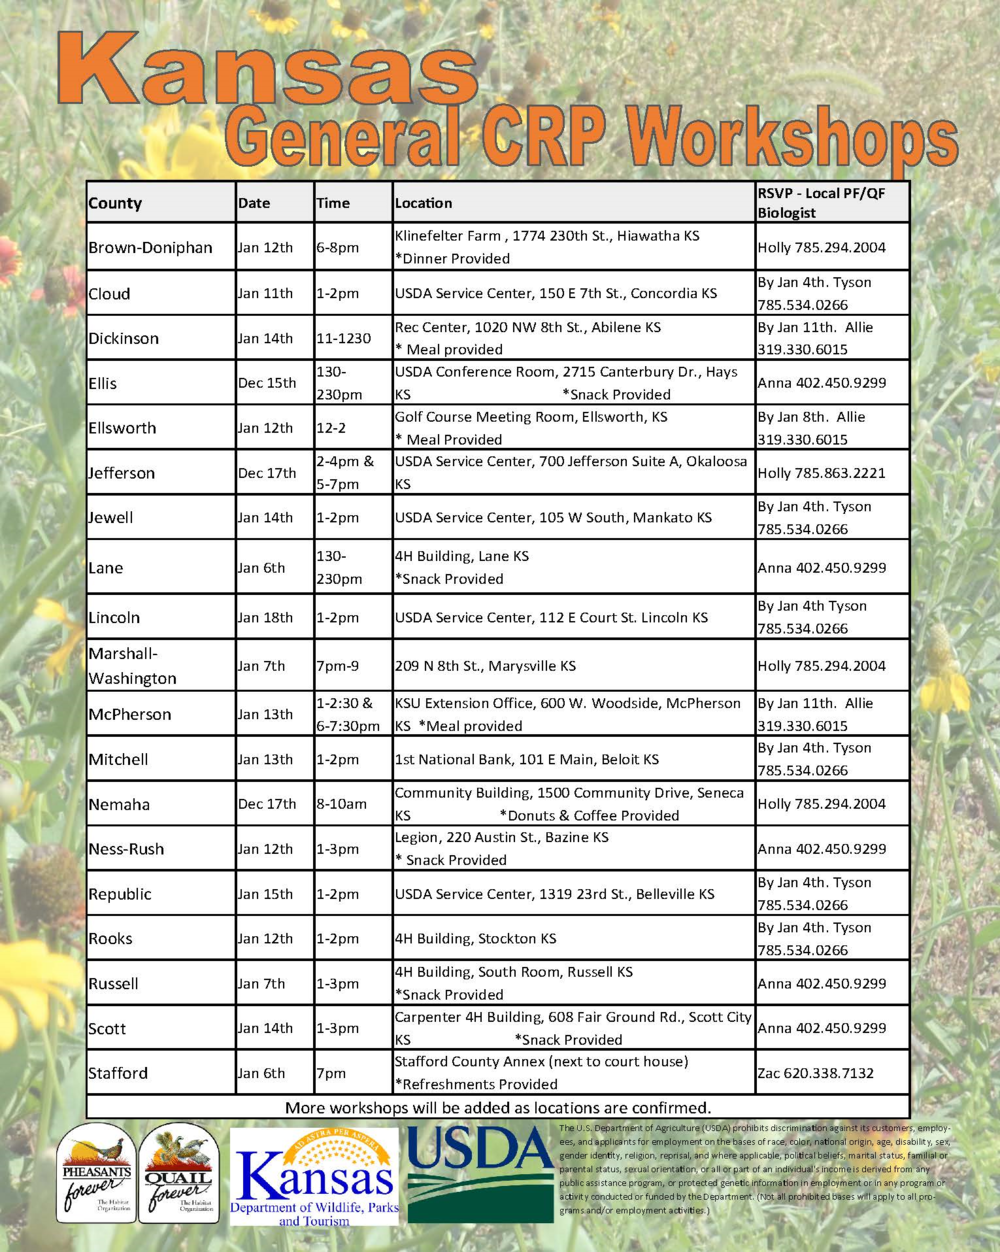 Download in PDF here. Find the nearest CRP Workshop to you and call the respective biologist to RSVP and with any questions. At these workshops you will hear practice options and information how to make the best choices for your farm and wildlife.  CRP Sign-up will take place at FSA offices from Dec. 1, 2015 - Feb. 26, 2016.